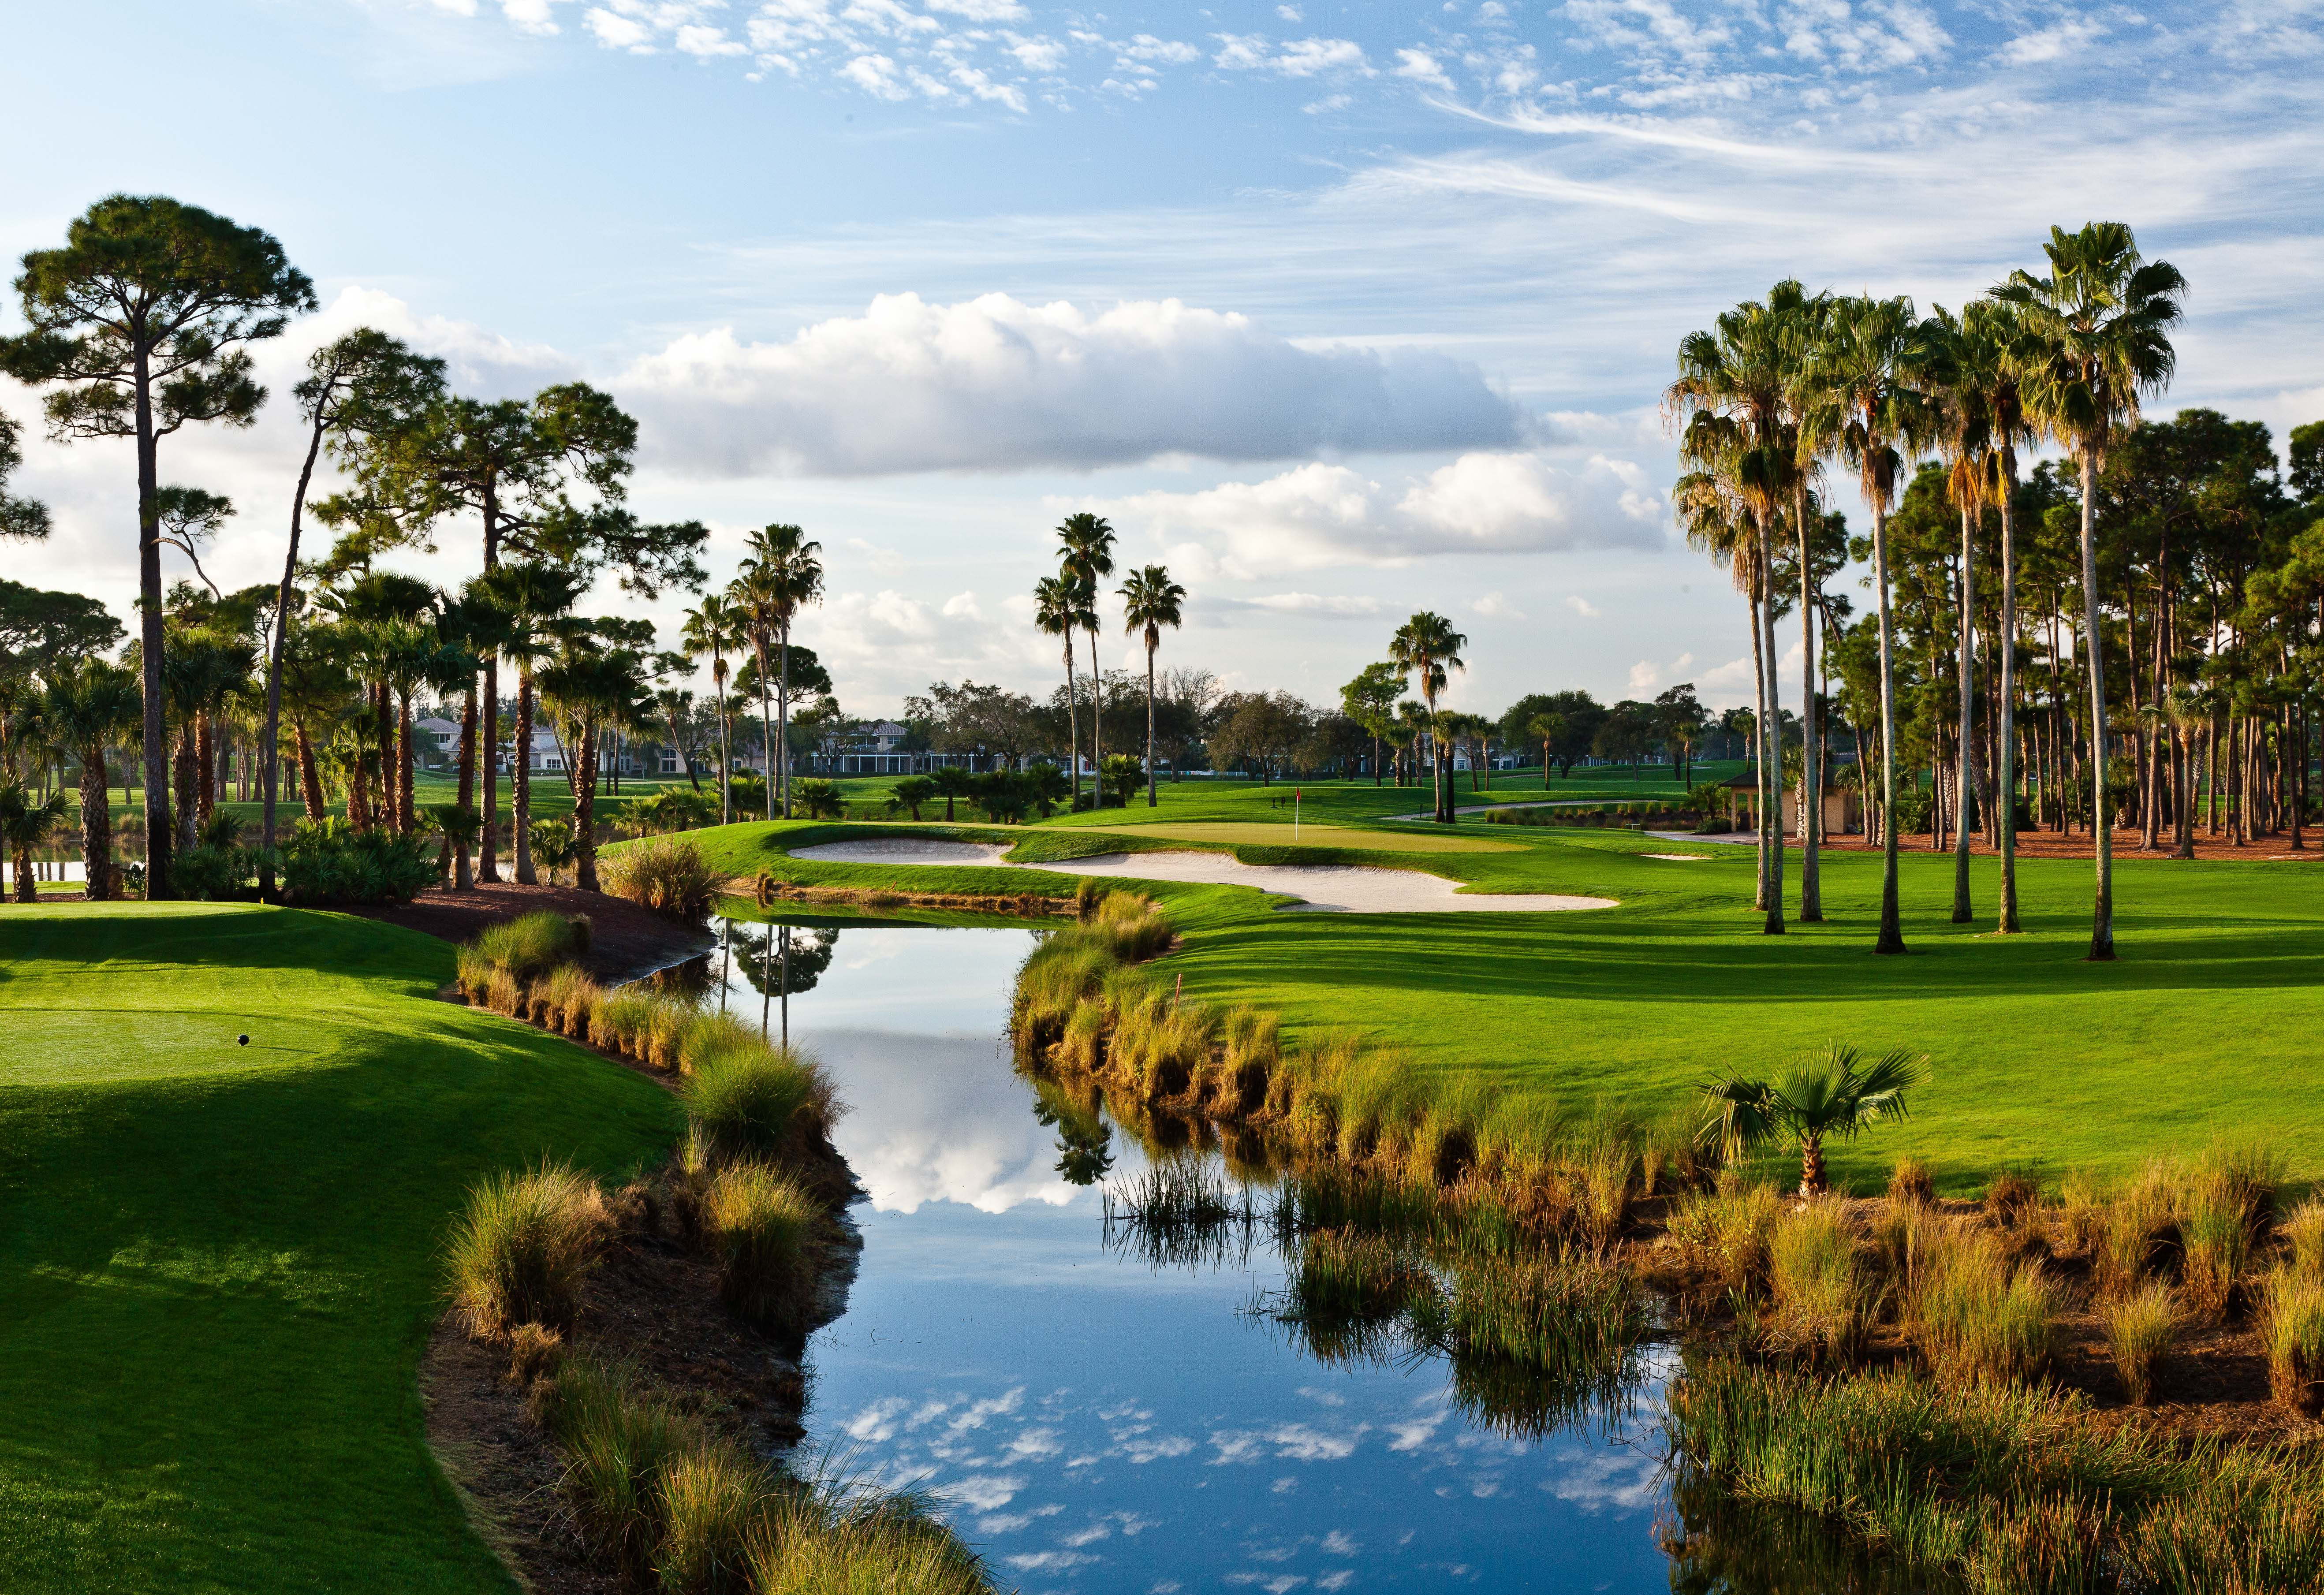 Pga national resort spa fall vacation packages for Spa resort vacation packages